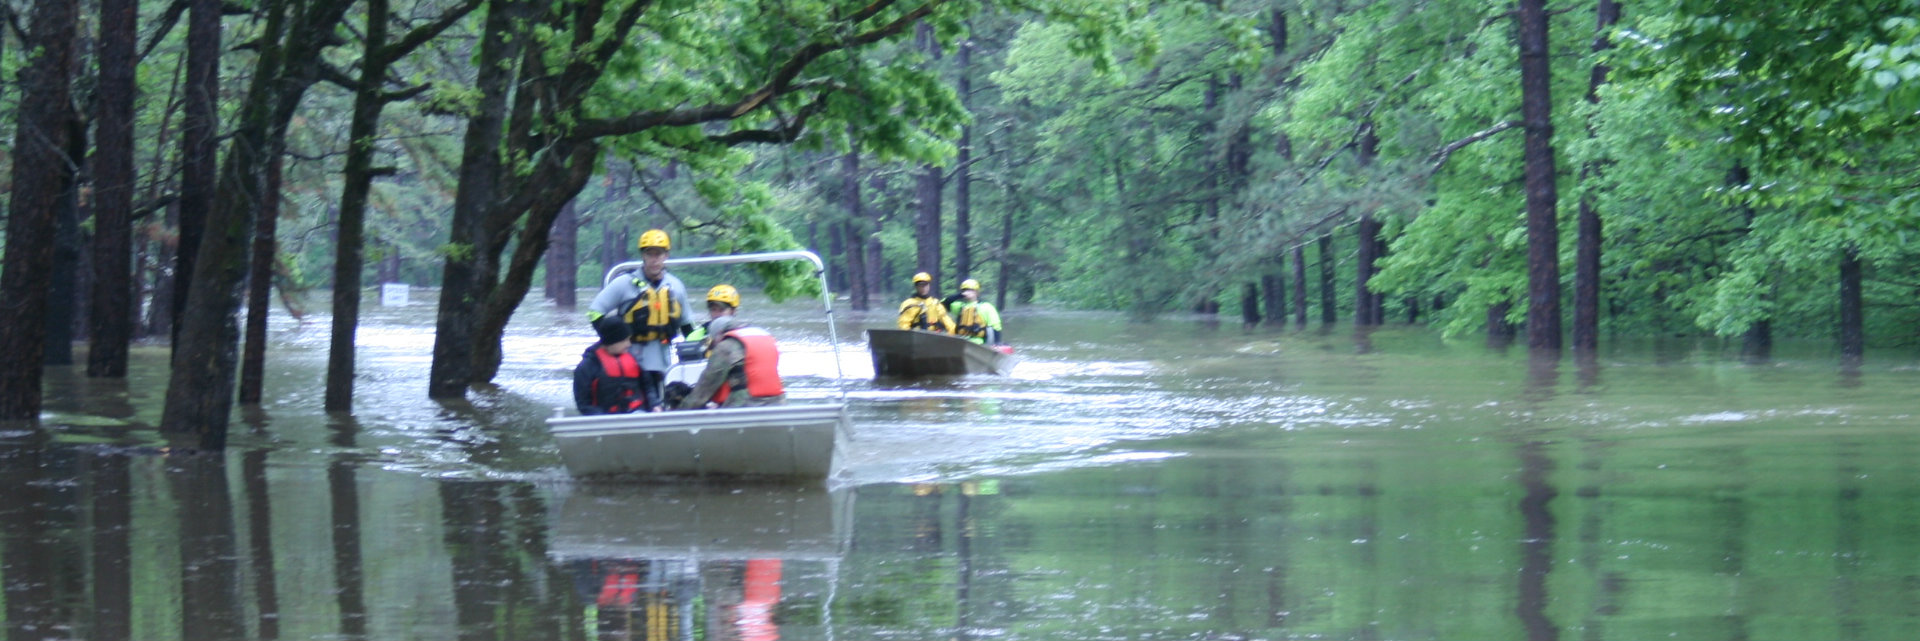 Rangers in boat travel through flooded water next to trees.